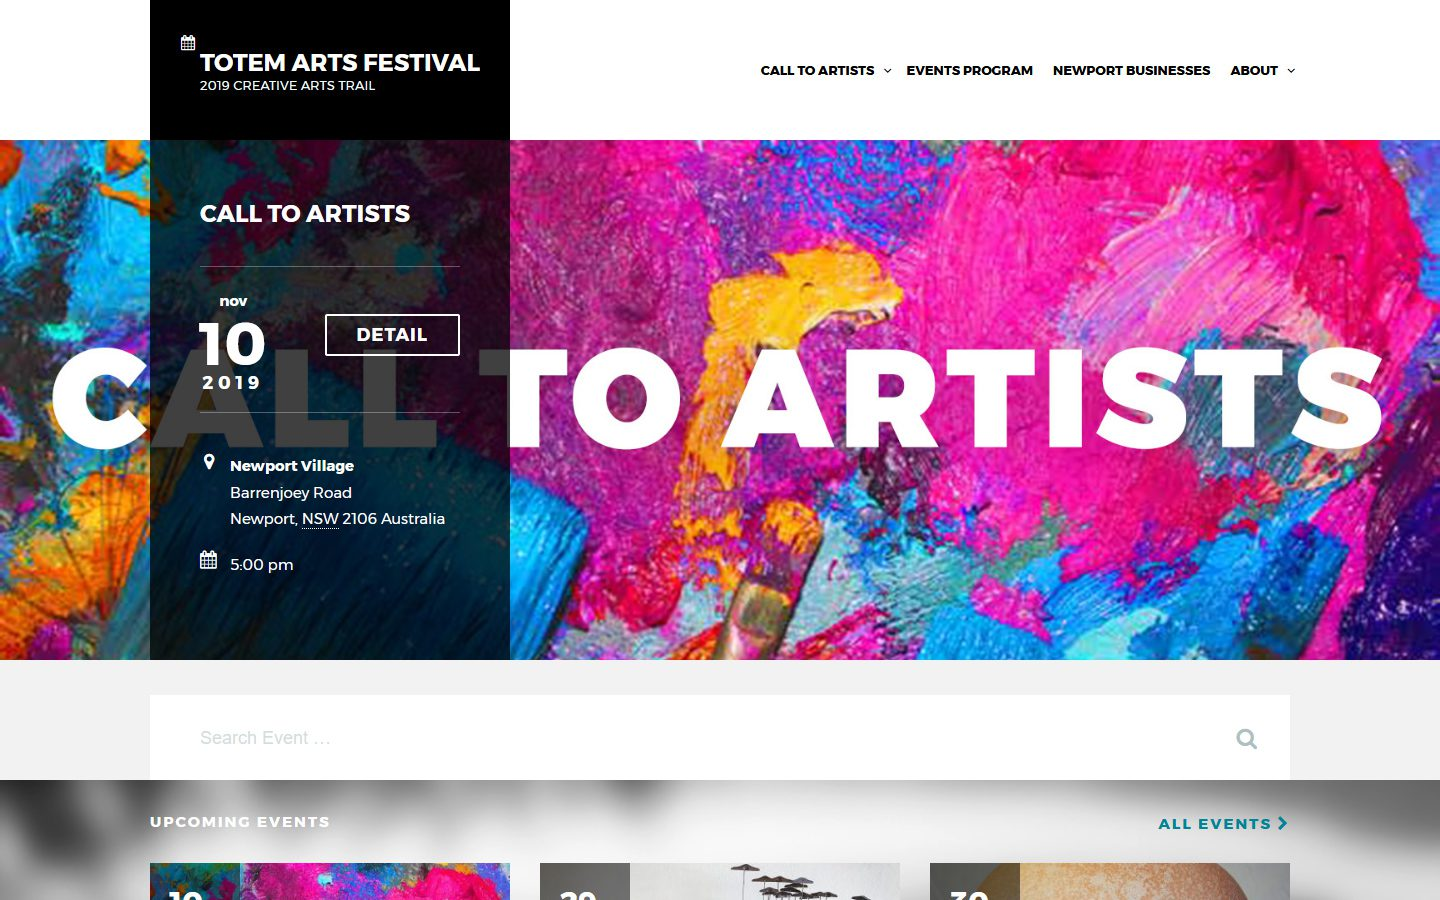 Totem Arts Festival Website - 2019